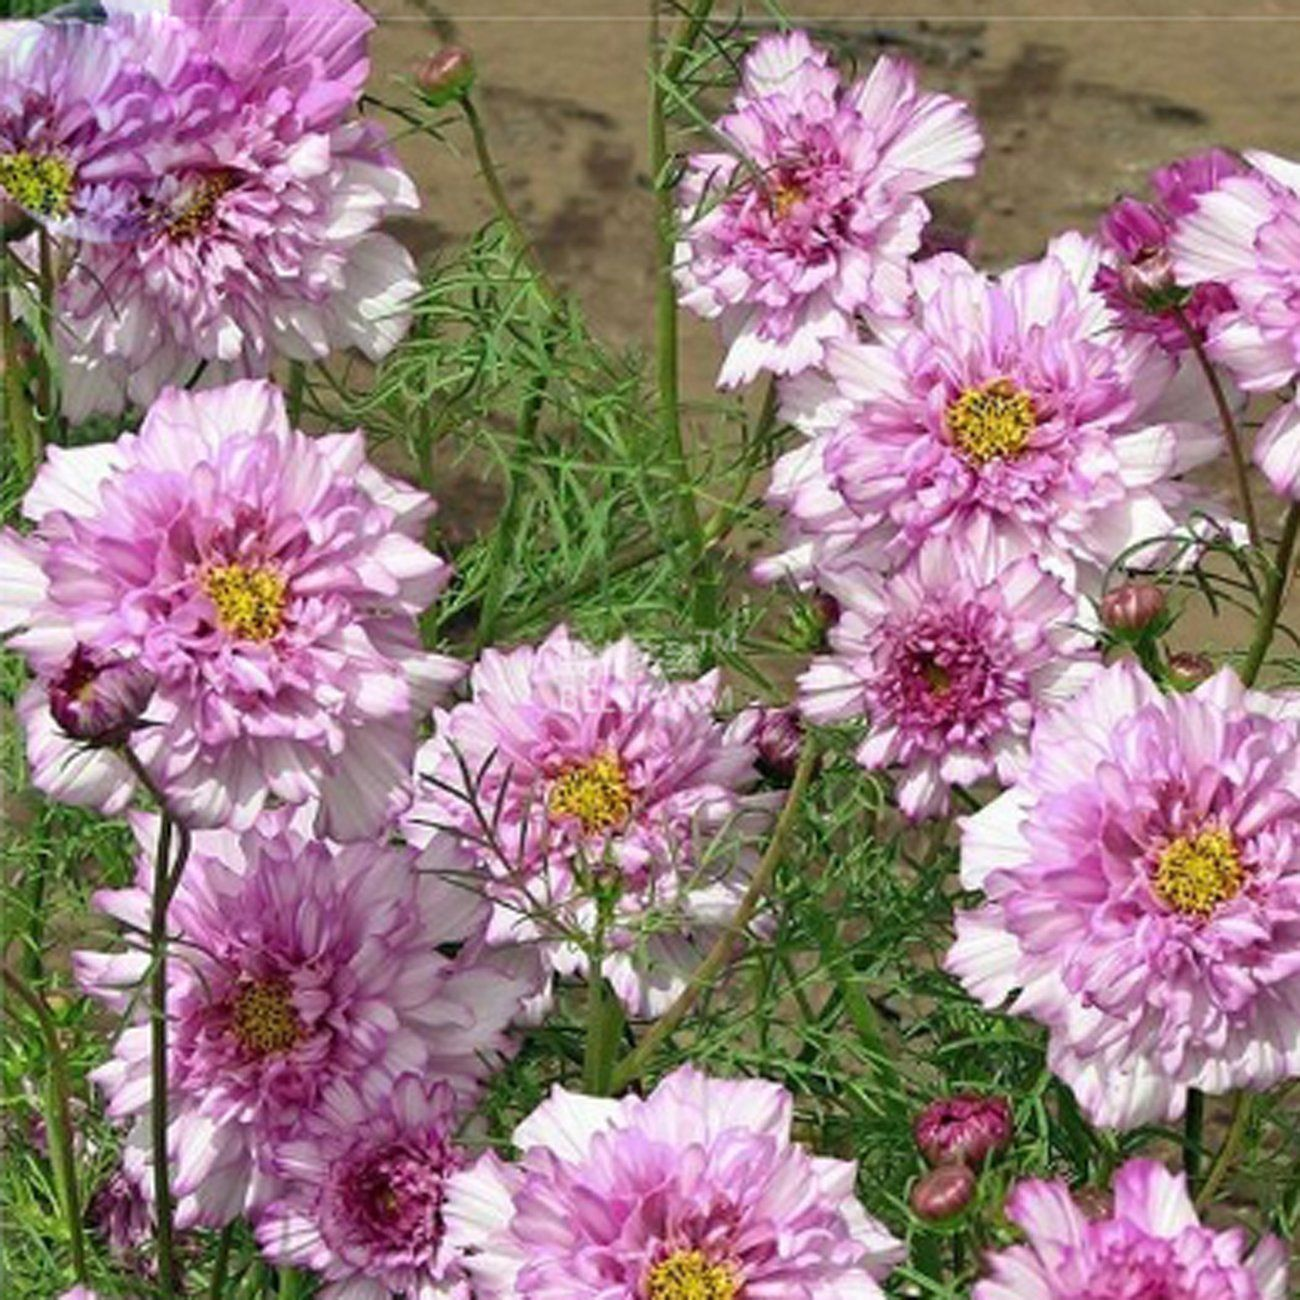 Amazon best garden seeds rare cosmos coreopsis double petals cosmos double click bicolor pink for bed and pots september flowers izmirmasajfo Gallery